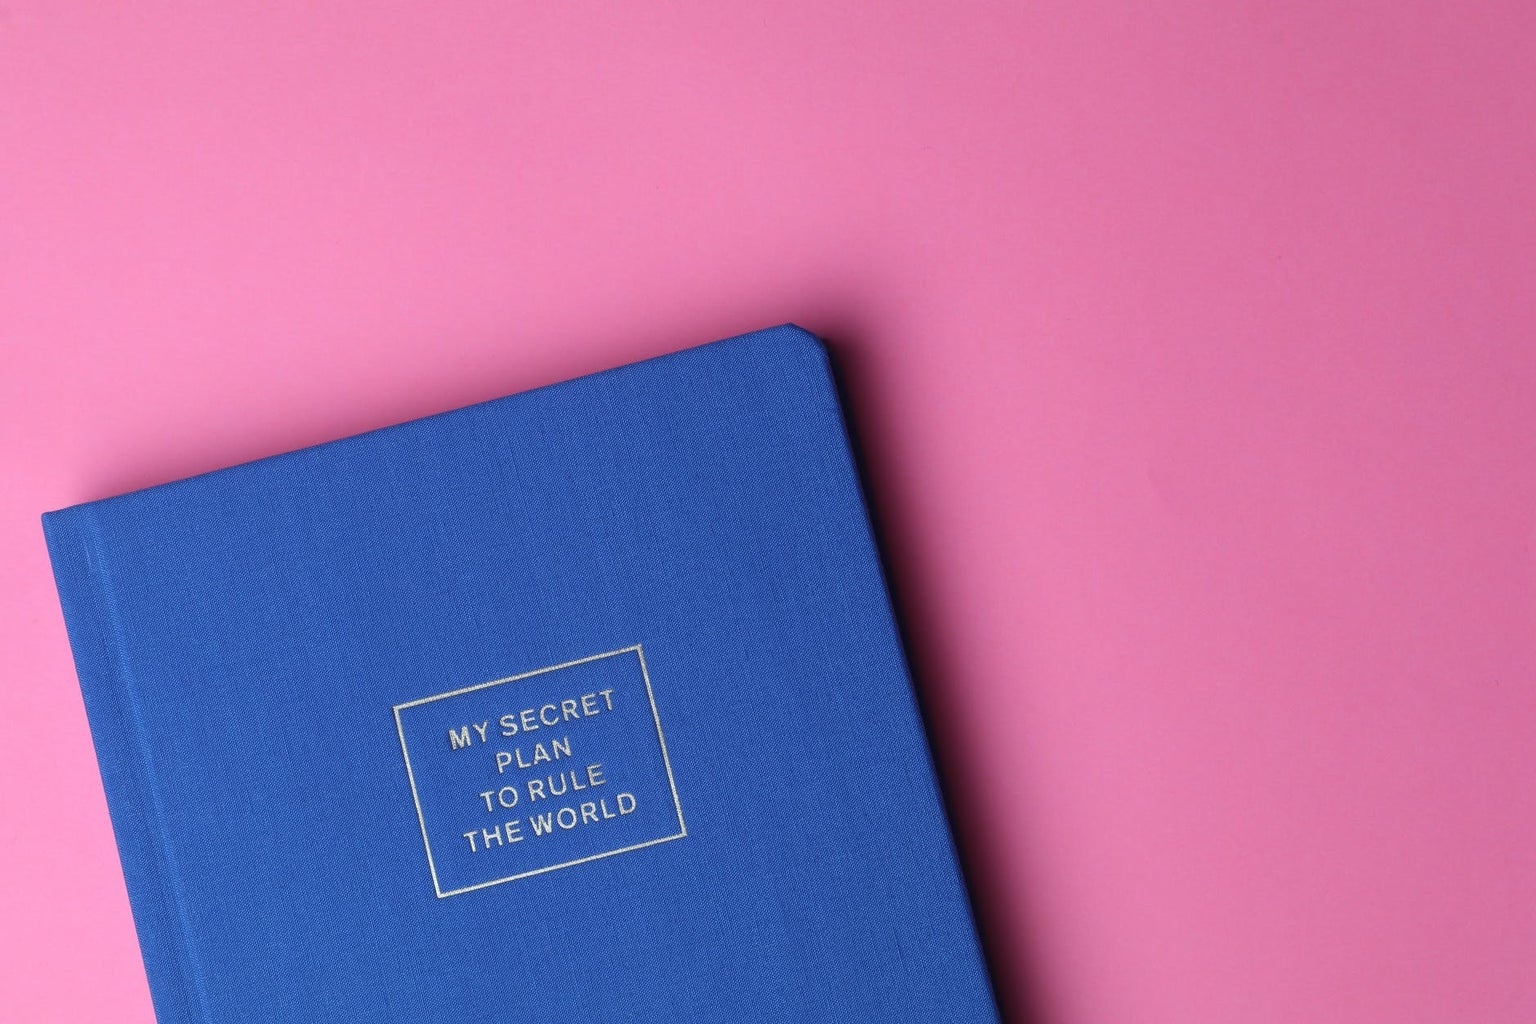 blue notebook saying my secret plan to rule the world on cover with pink background